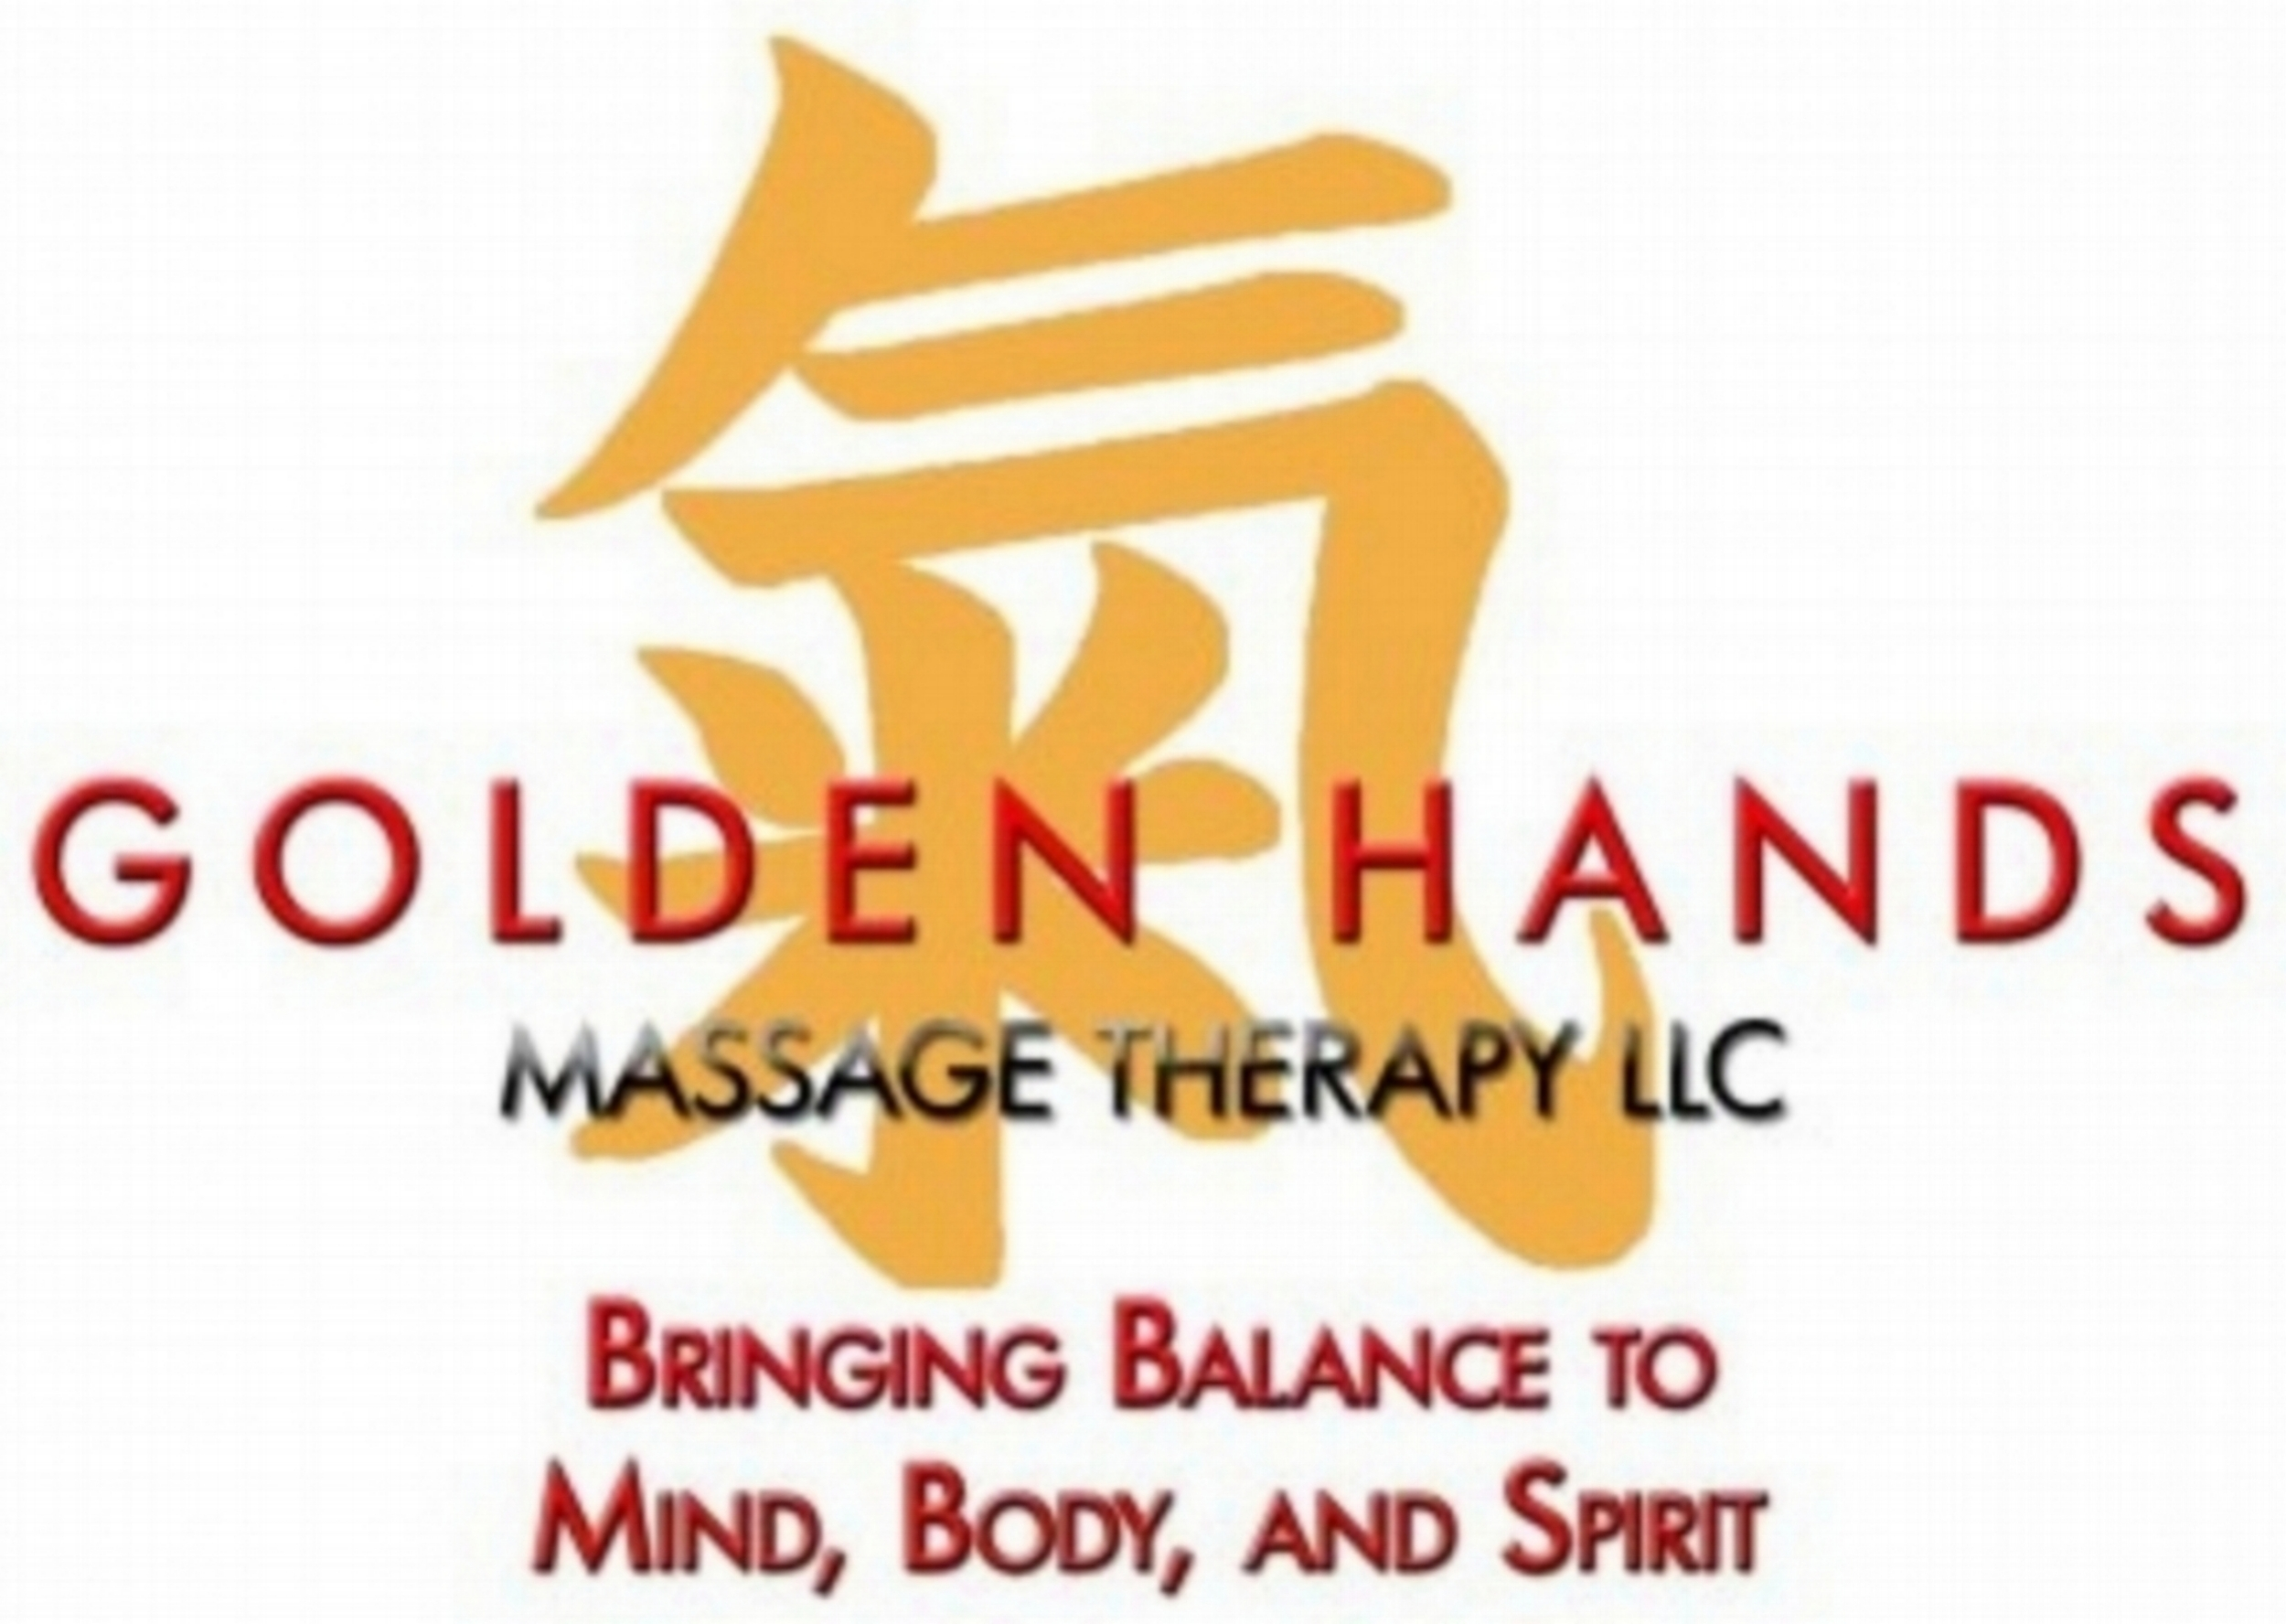 - Golden Hands Massage Therapy